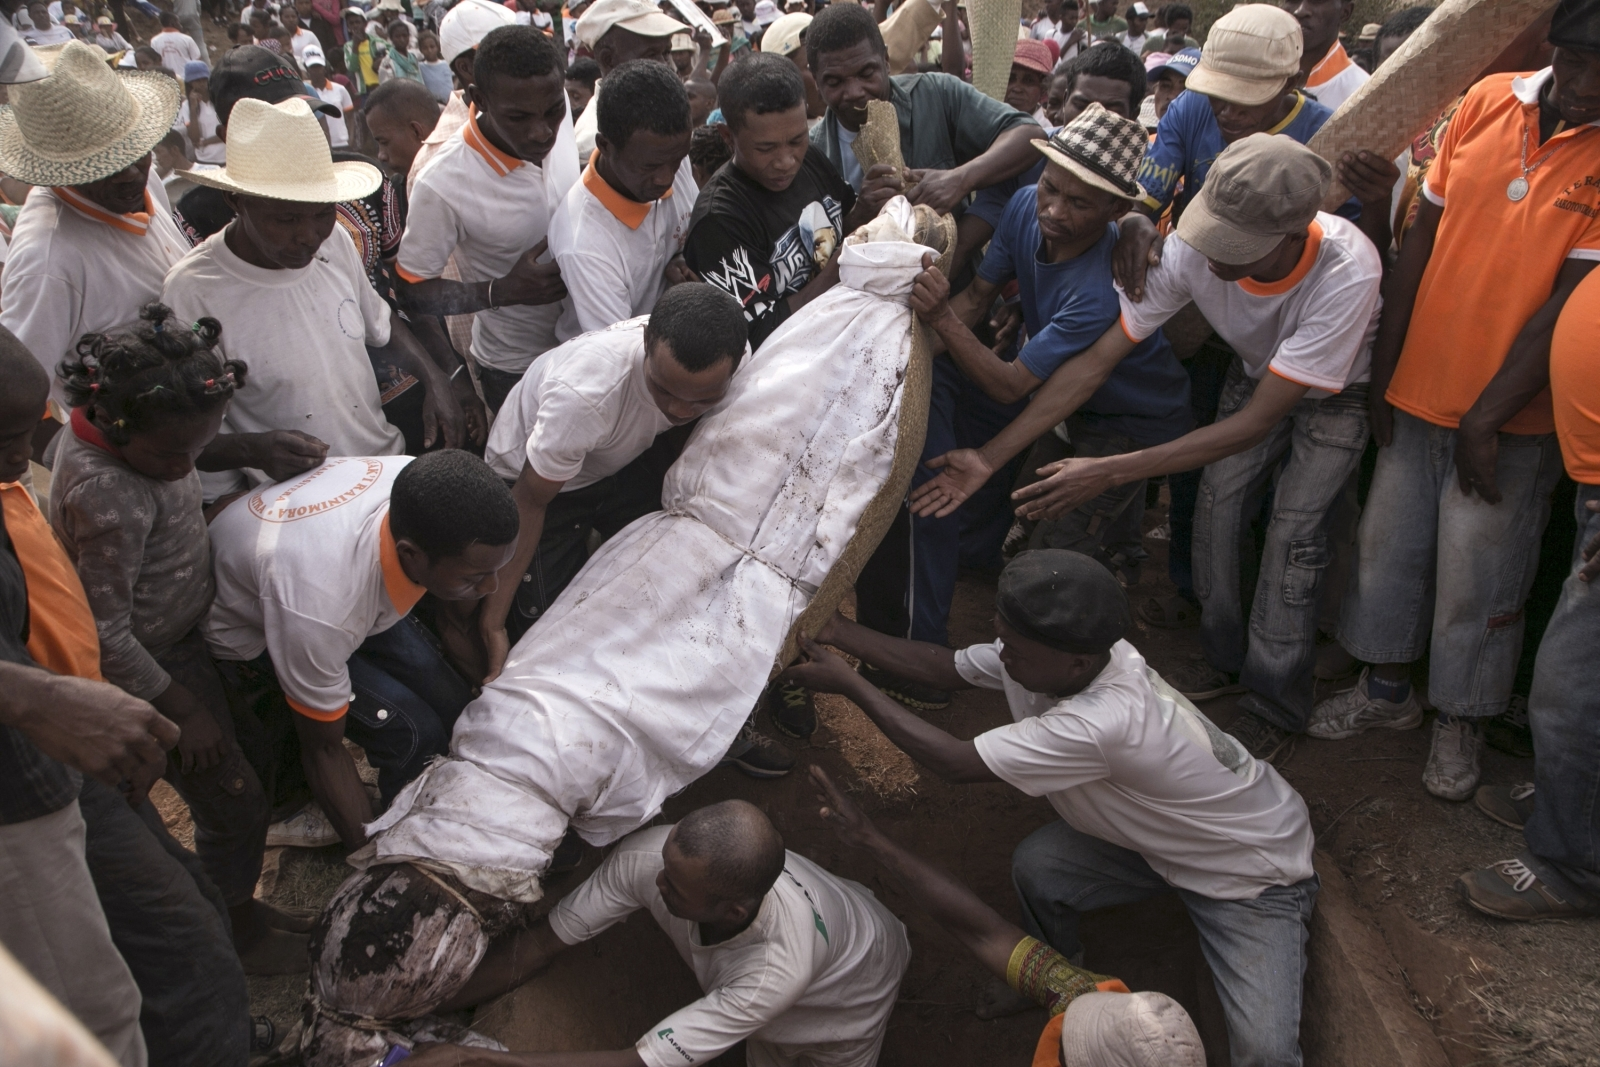 People carry a body wrapped in a sheet as they take part in a funerary tradition called the Famadihana in the village of Ambohijafy, a few kilometres from Antananarivo, on September 23, 2017.